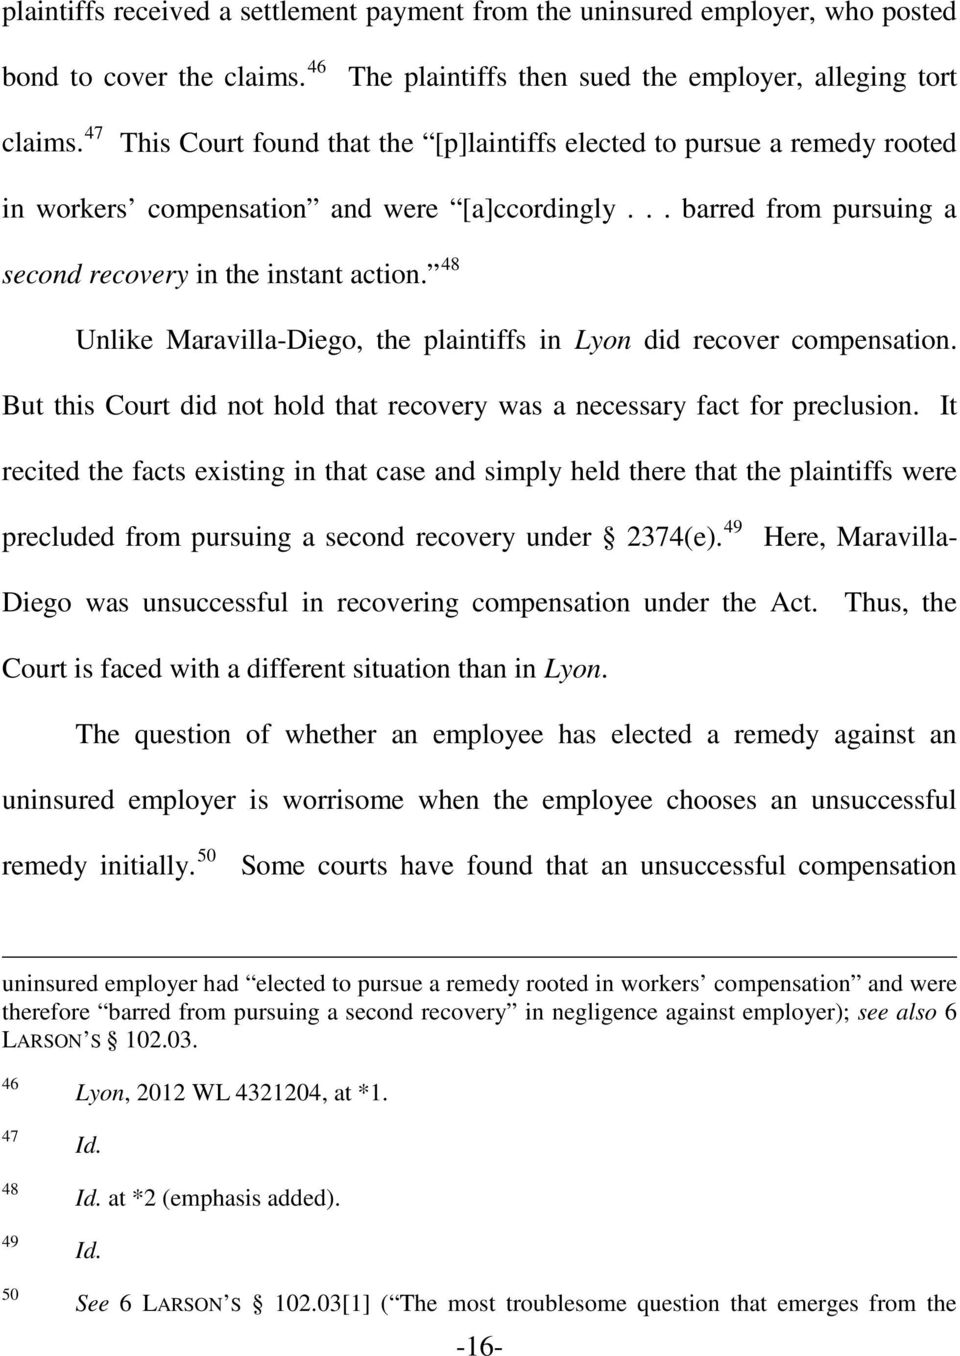 48 Unlike Maravilla-Diego, the plaintiffs in Lyon did recover compensation. But this Court did not hold that recovery was a necessary fact for preclusion.